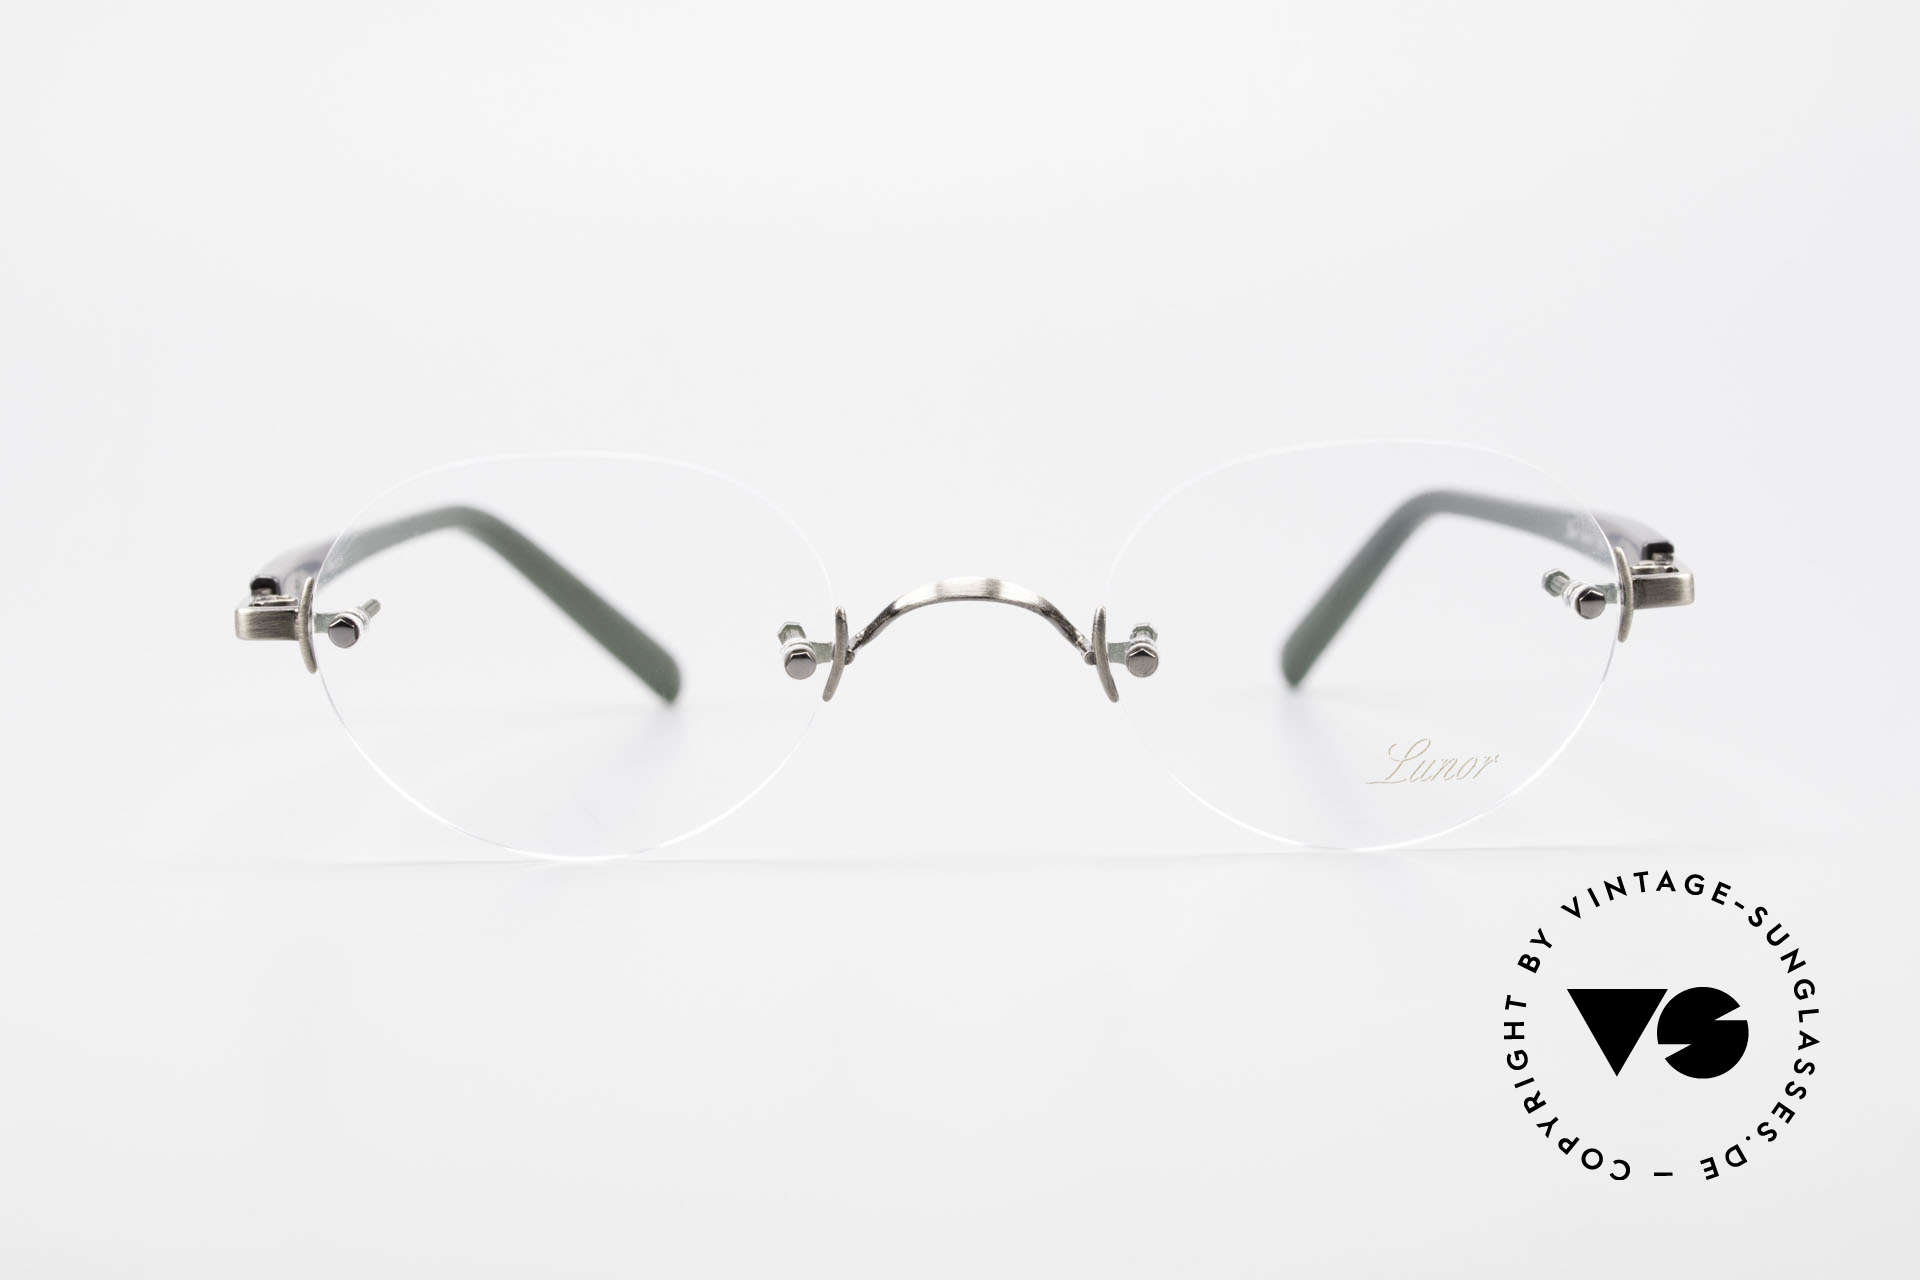 Lunor Classic V Panto AS Panto Rimless Frame Unisex, without ostentatious logos (but in a timeless elegance), Made for Men and Women